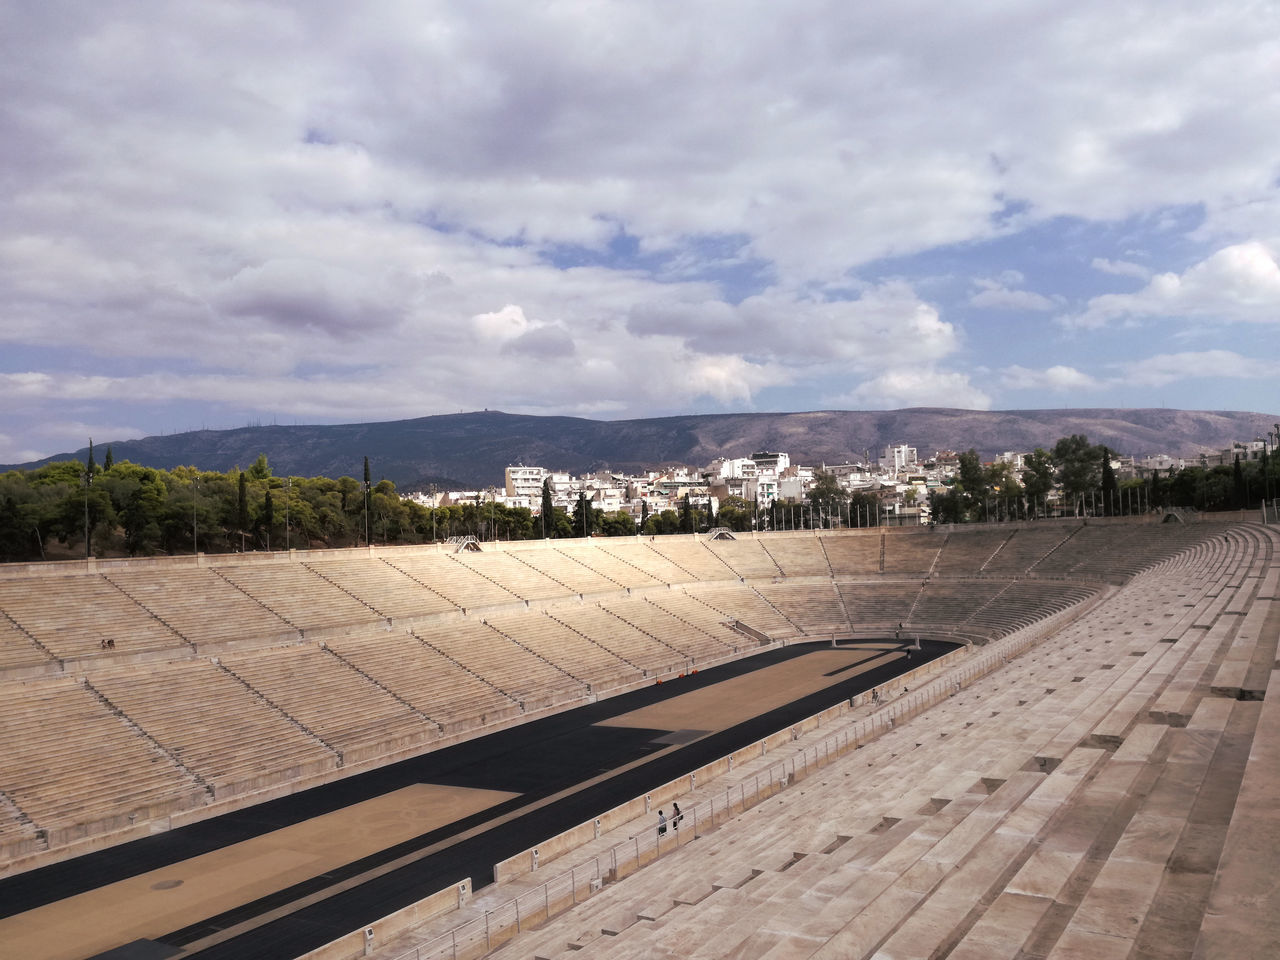 Athens, Greece Landascape Olimpic Games  Olimpic Stadium Panoramic Landscape Sky Sky And Clouds View Outdoors Tranquility Scenics No People Stadium Panathinaiko Architecture